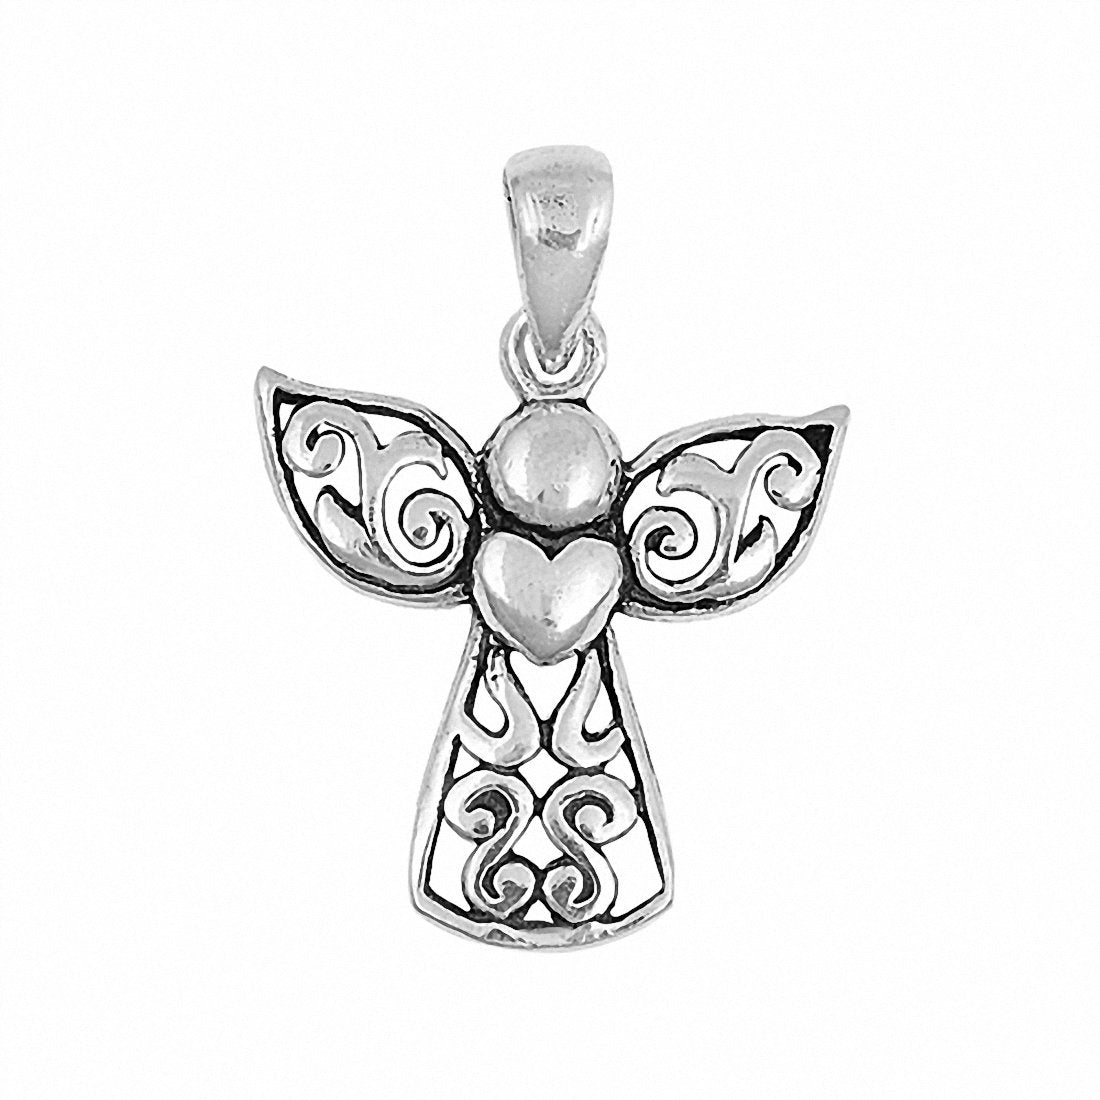 Angel heart pendant 925 sterling silver choose color blue apple angel heart pendant 925 sterling silver choose color mozeypictures Choice Image